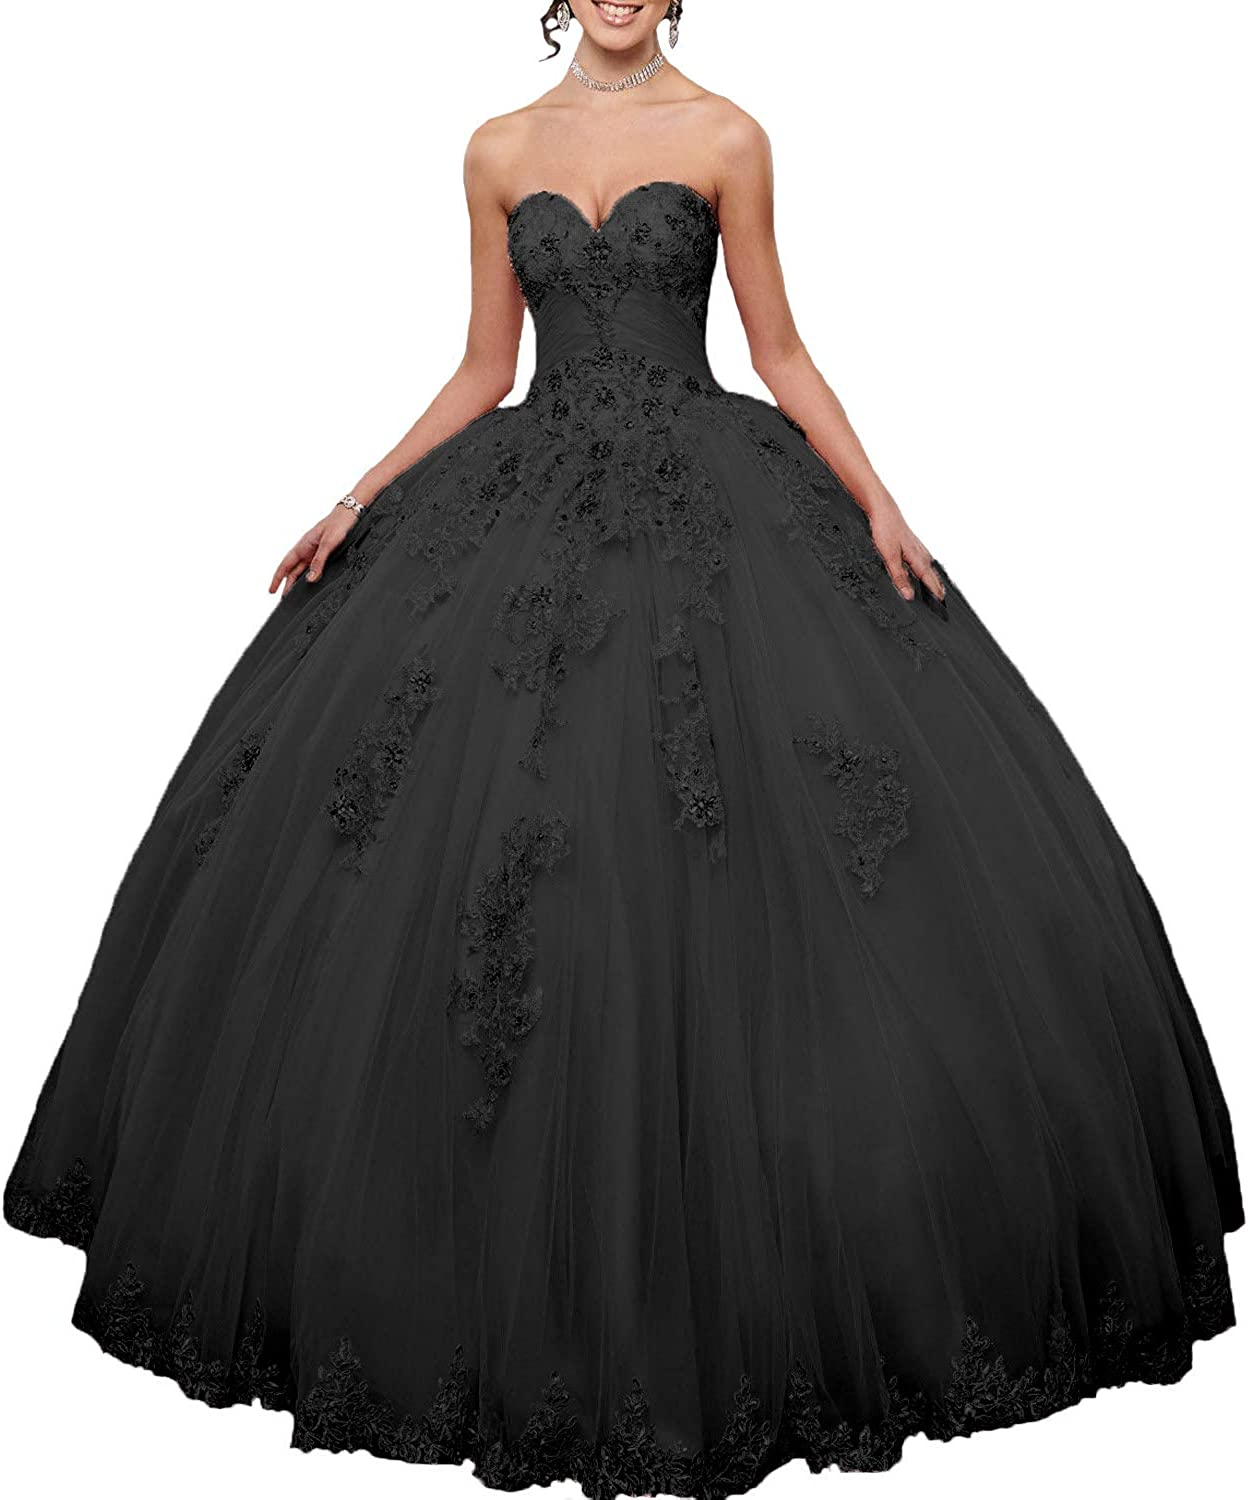 Amazon Com Fair Lady Women S Pink Ball Gown Quinceanera Dresses 2020 Sweetheart Appliques Tulle Princess Prom Party Gowns Clothing